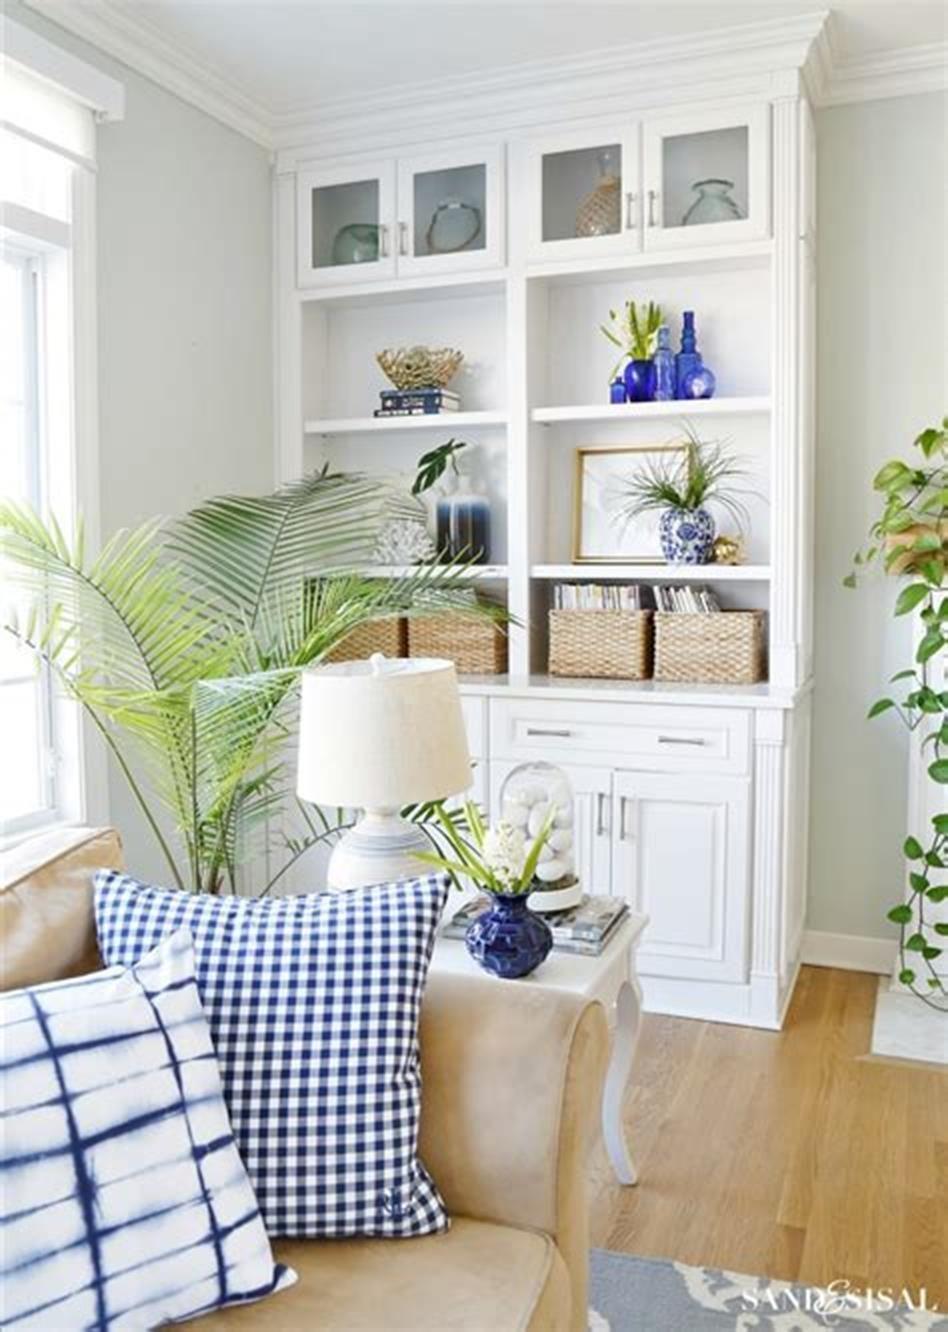 50 affordable living room decorating ideas on a budget